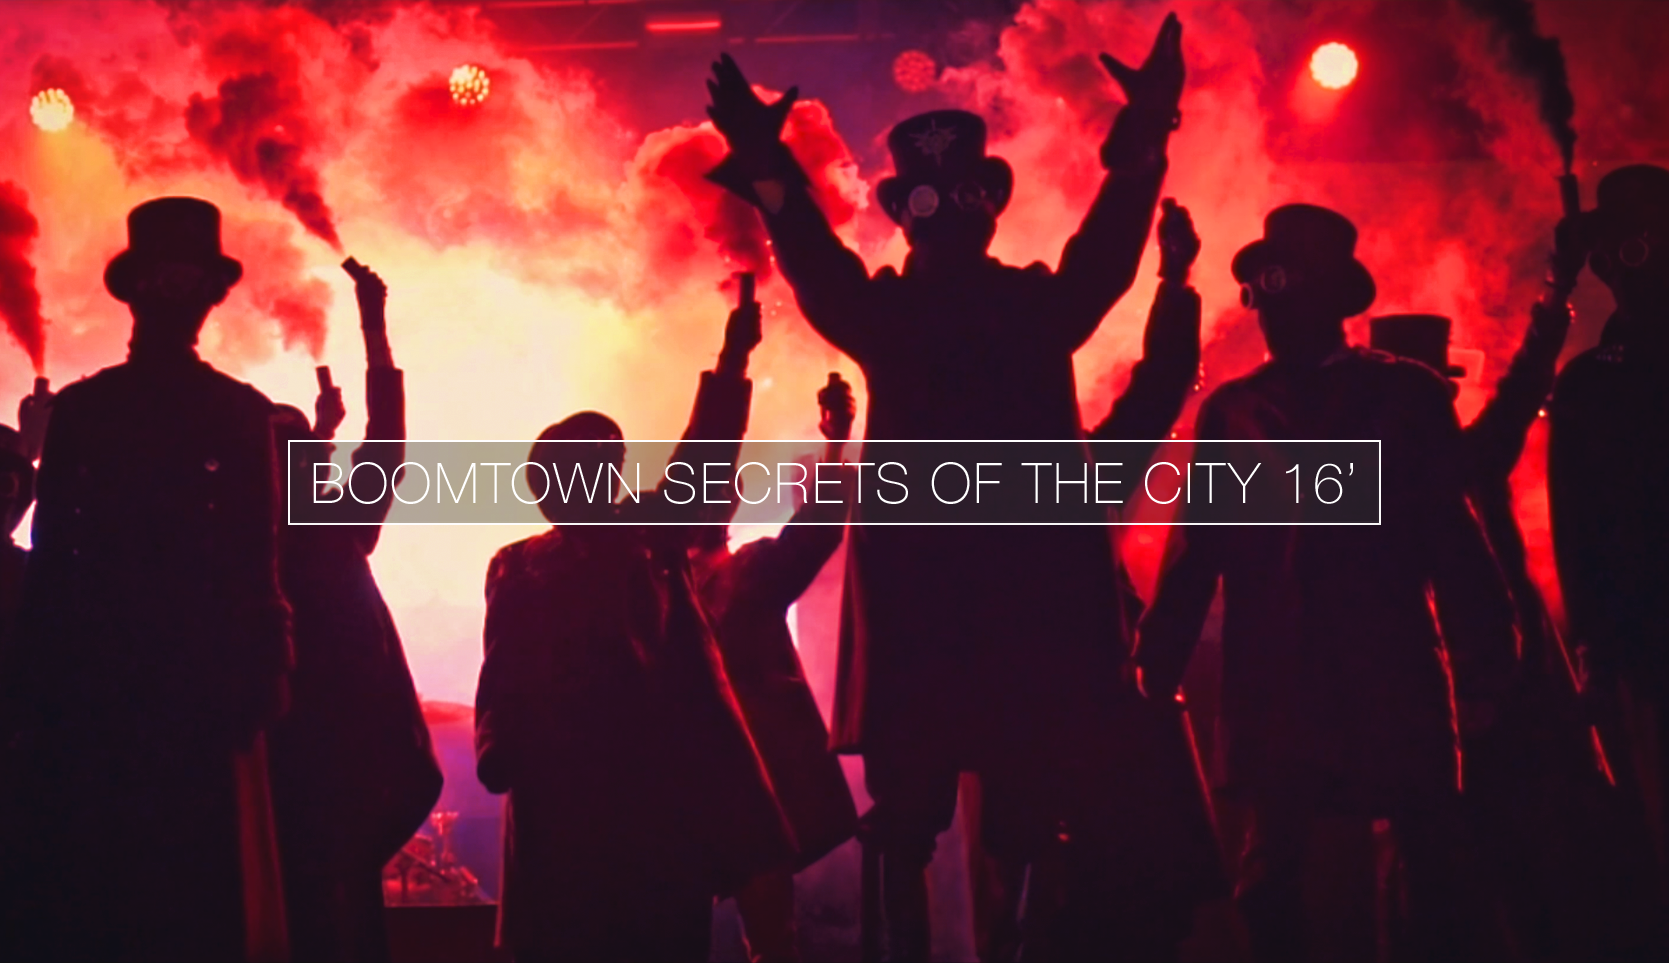 Boomtown 8 'Secrets of the City' 2016 official video